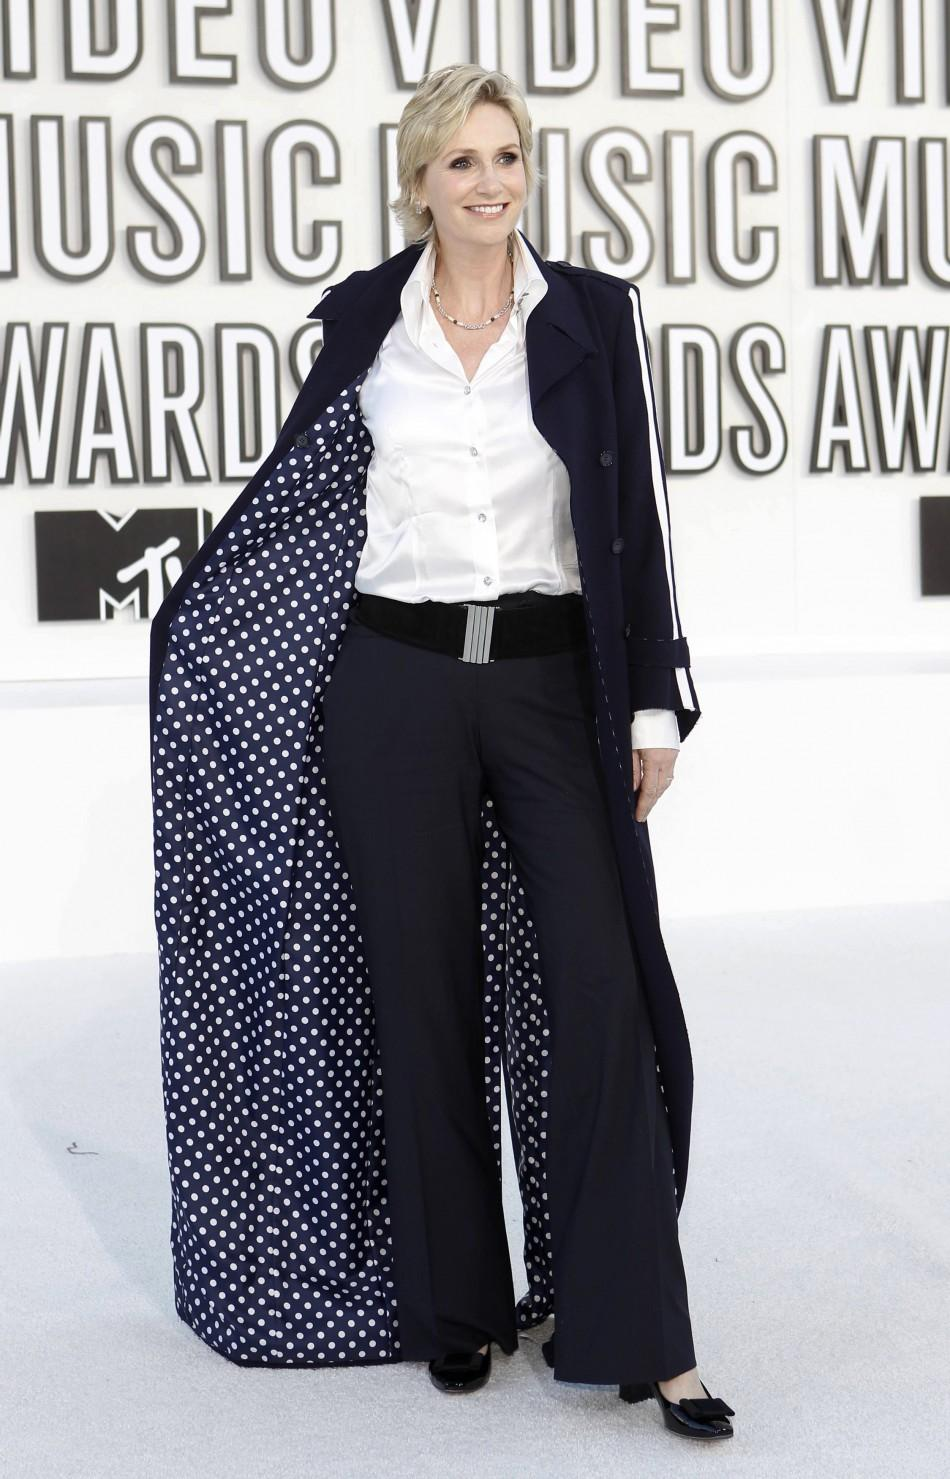 Actress Jane Lynch from the TV series 'Glee' poses as she arrives at the 2010 MTV Video Music Awards in Los Angeles, California, September 12, 2010.